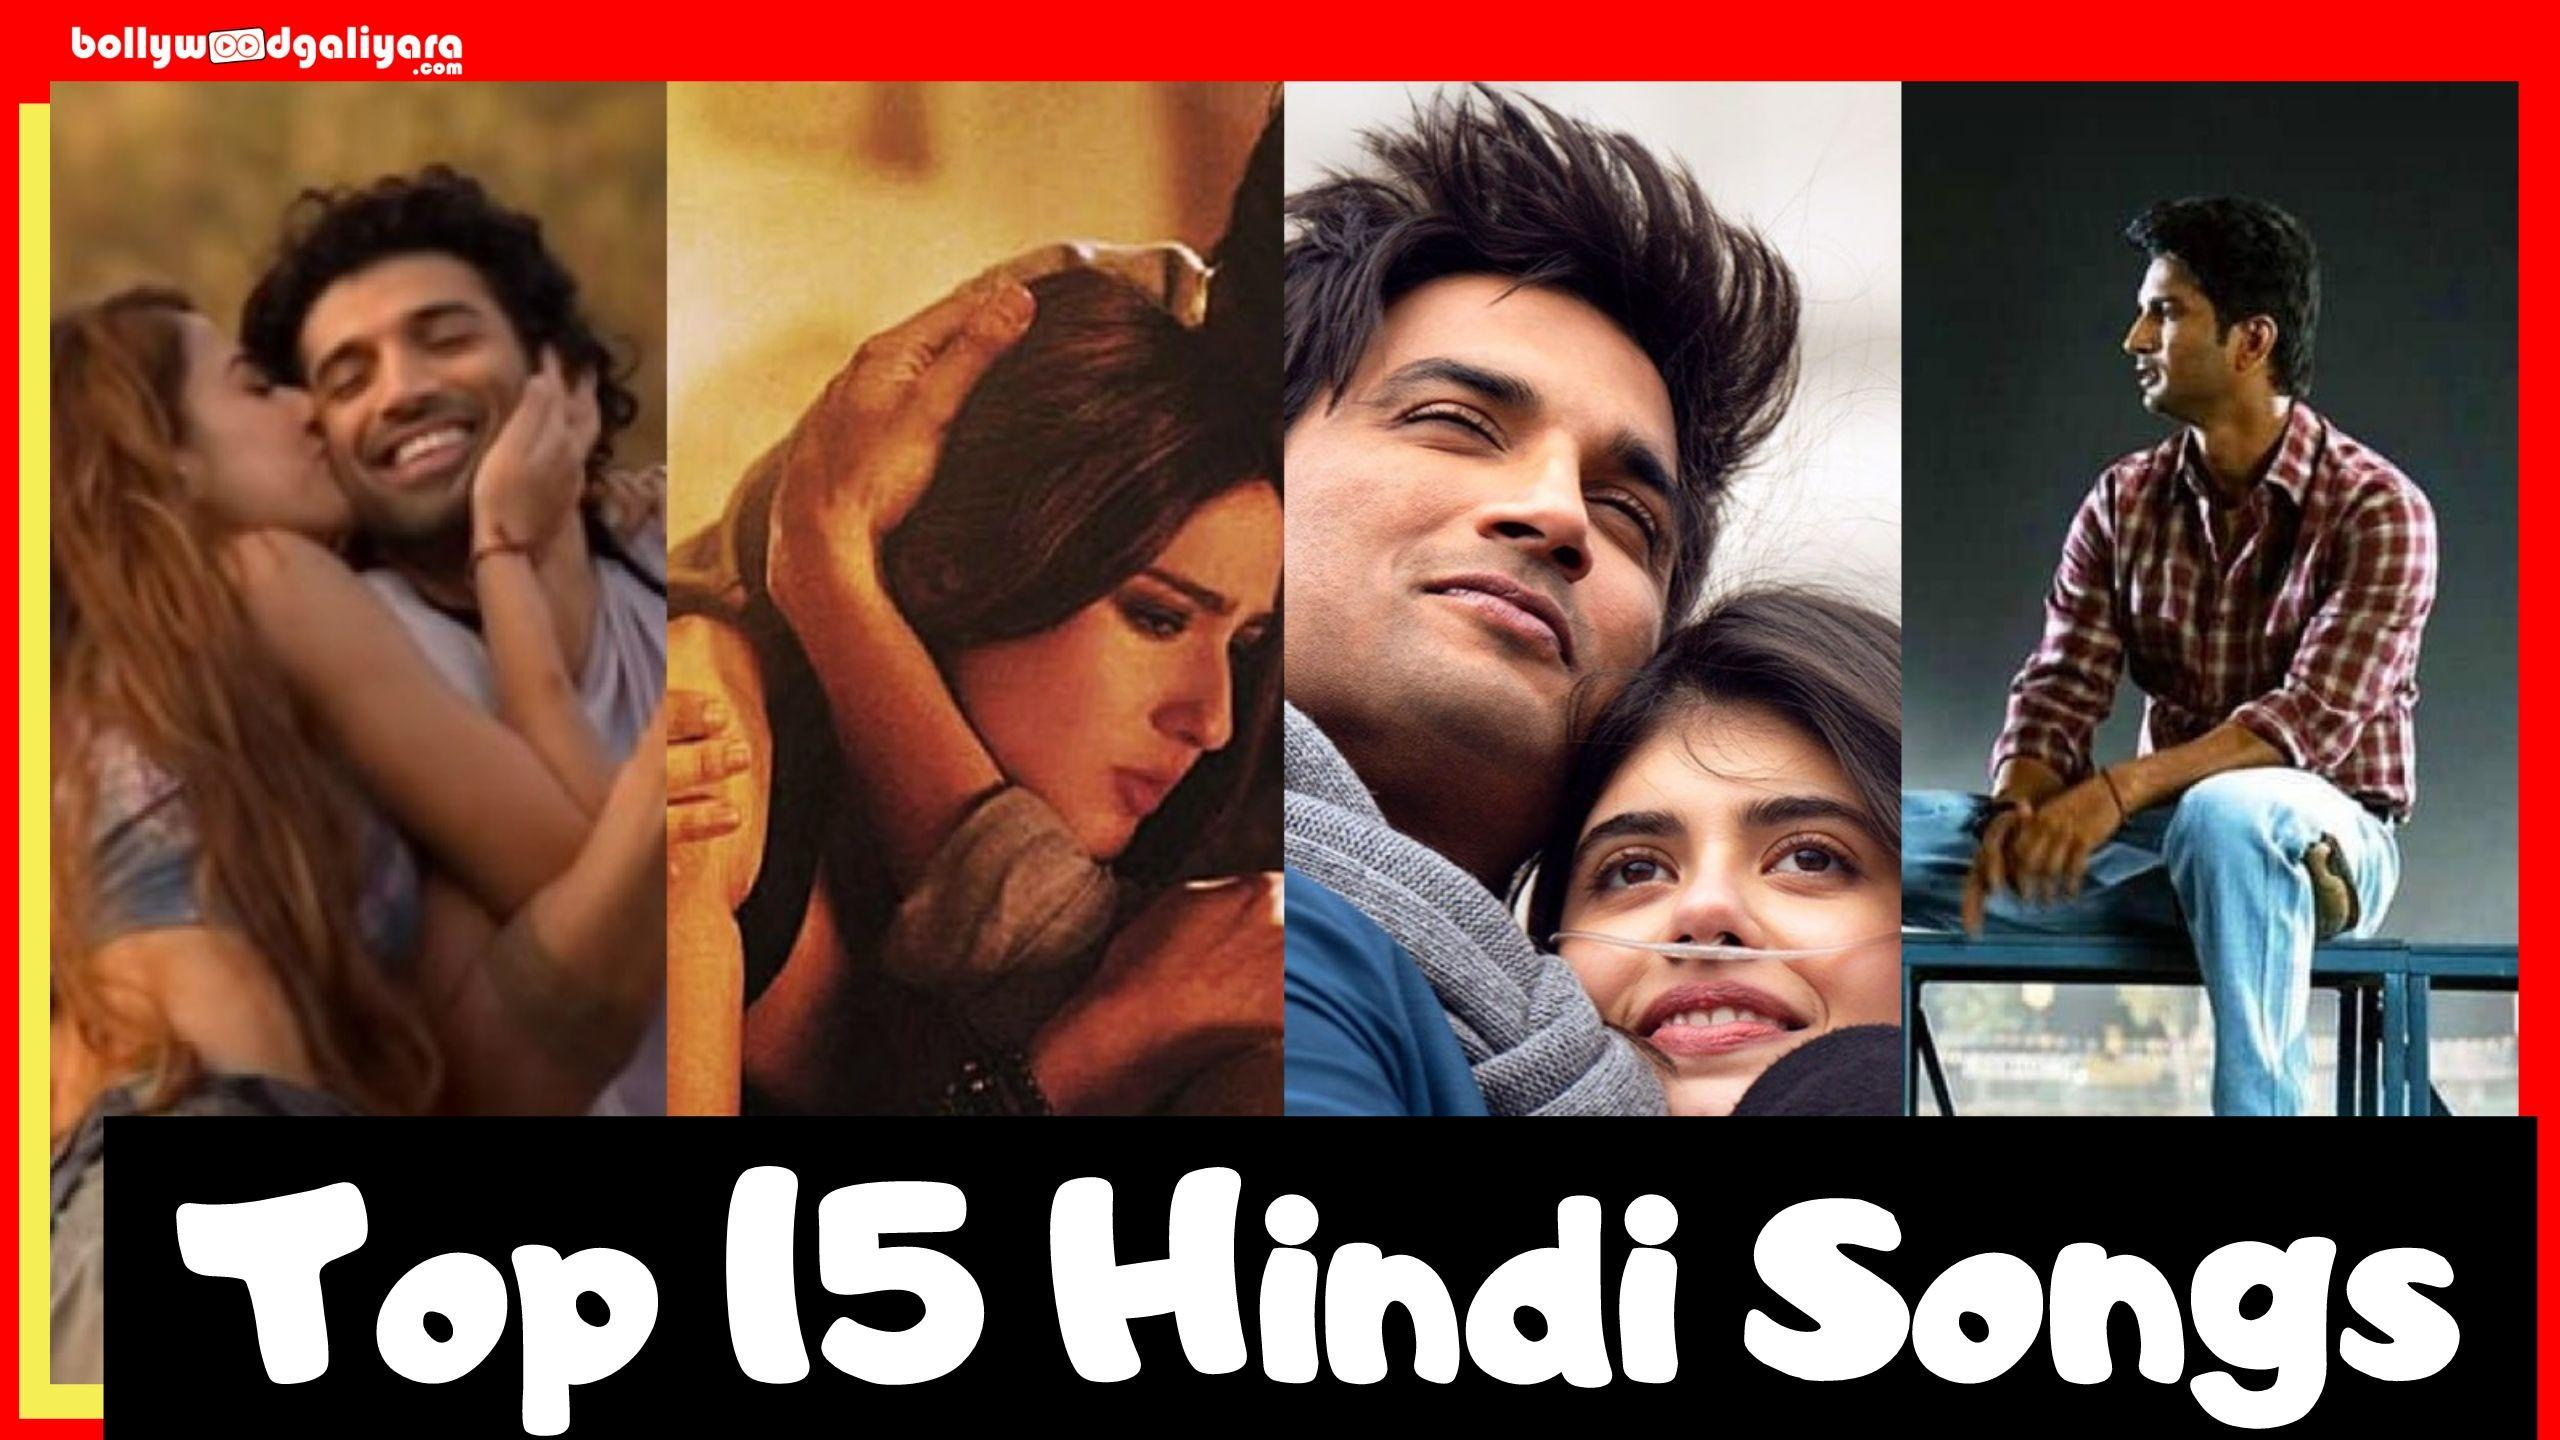 Top 15 Hindi Songs of Bollywood to bless your playlist!